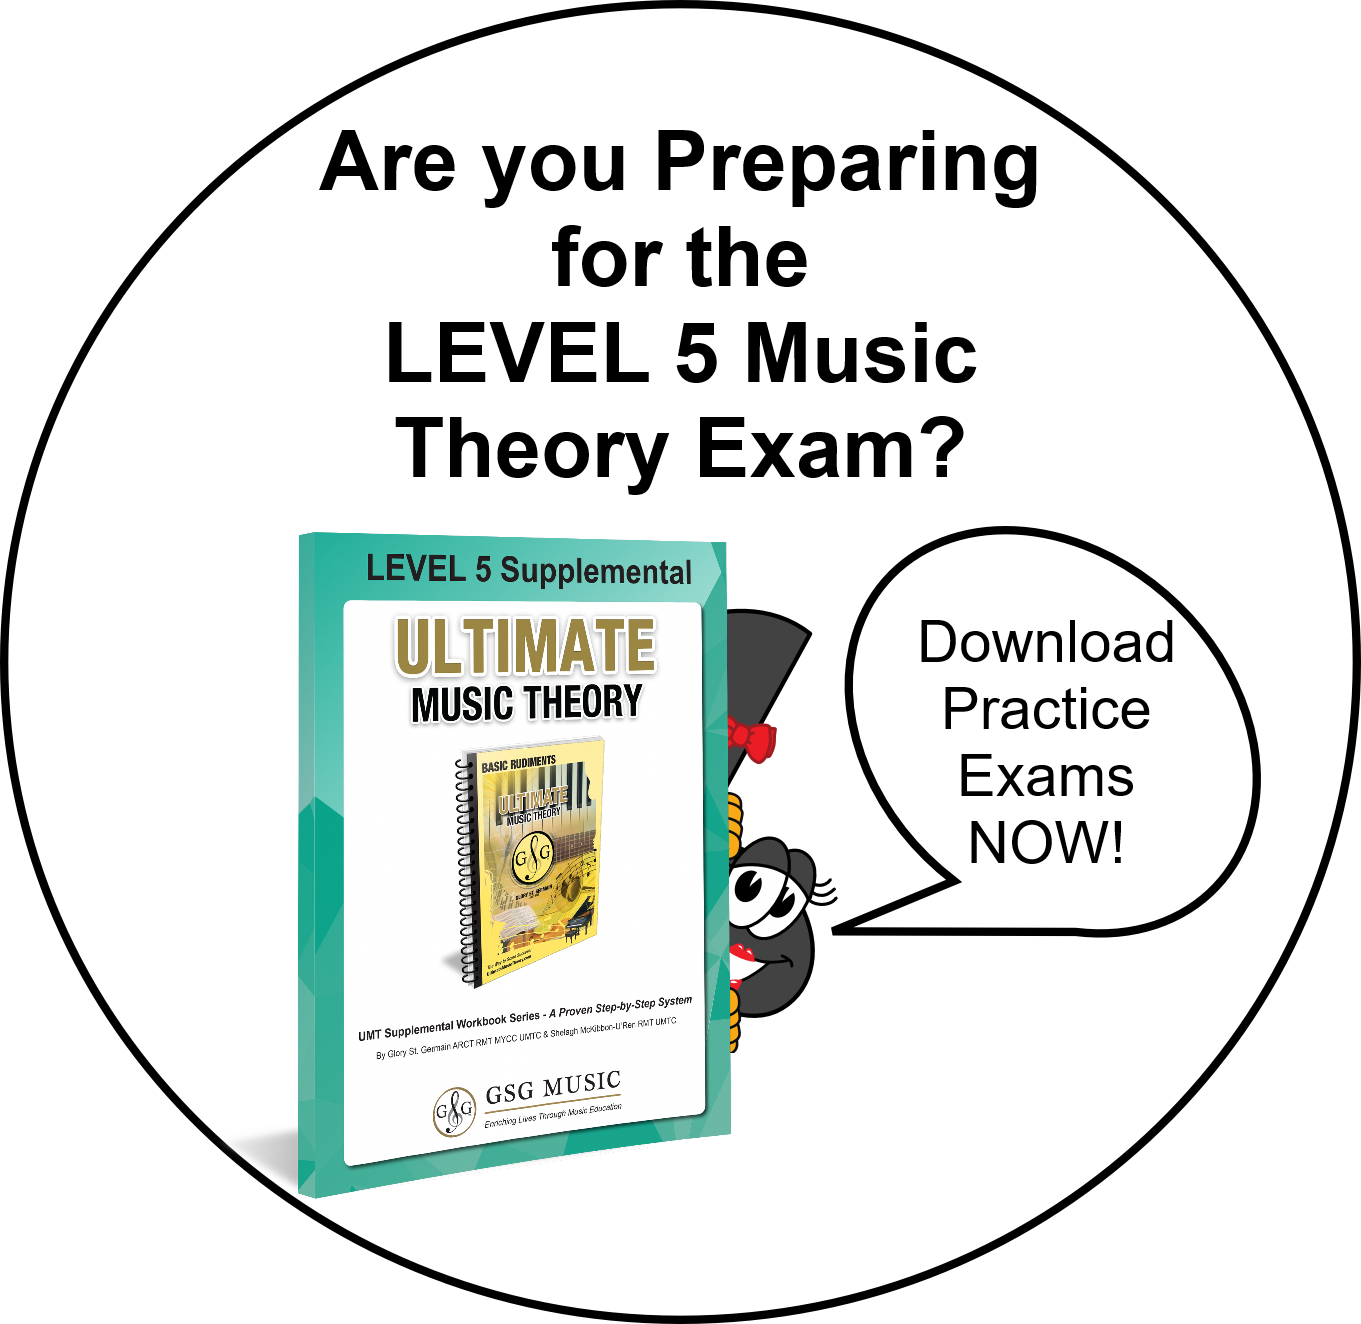 Ultimate Music Theory - Download Level 5 Music Theory Exams Now